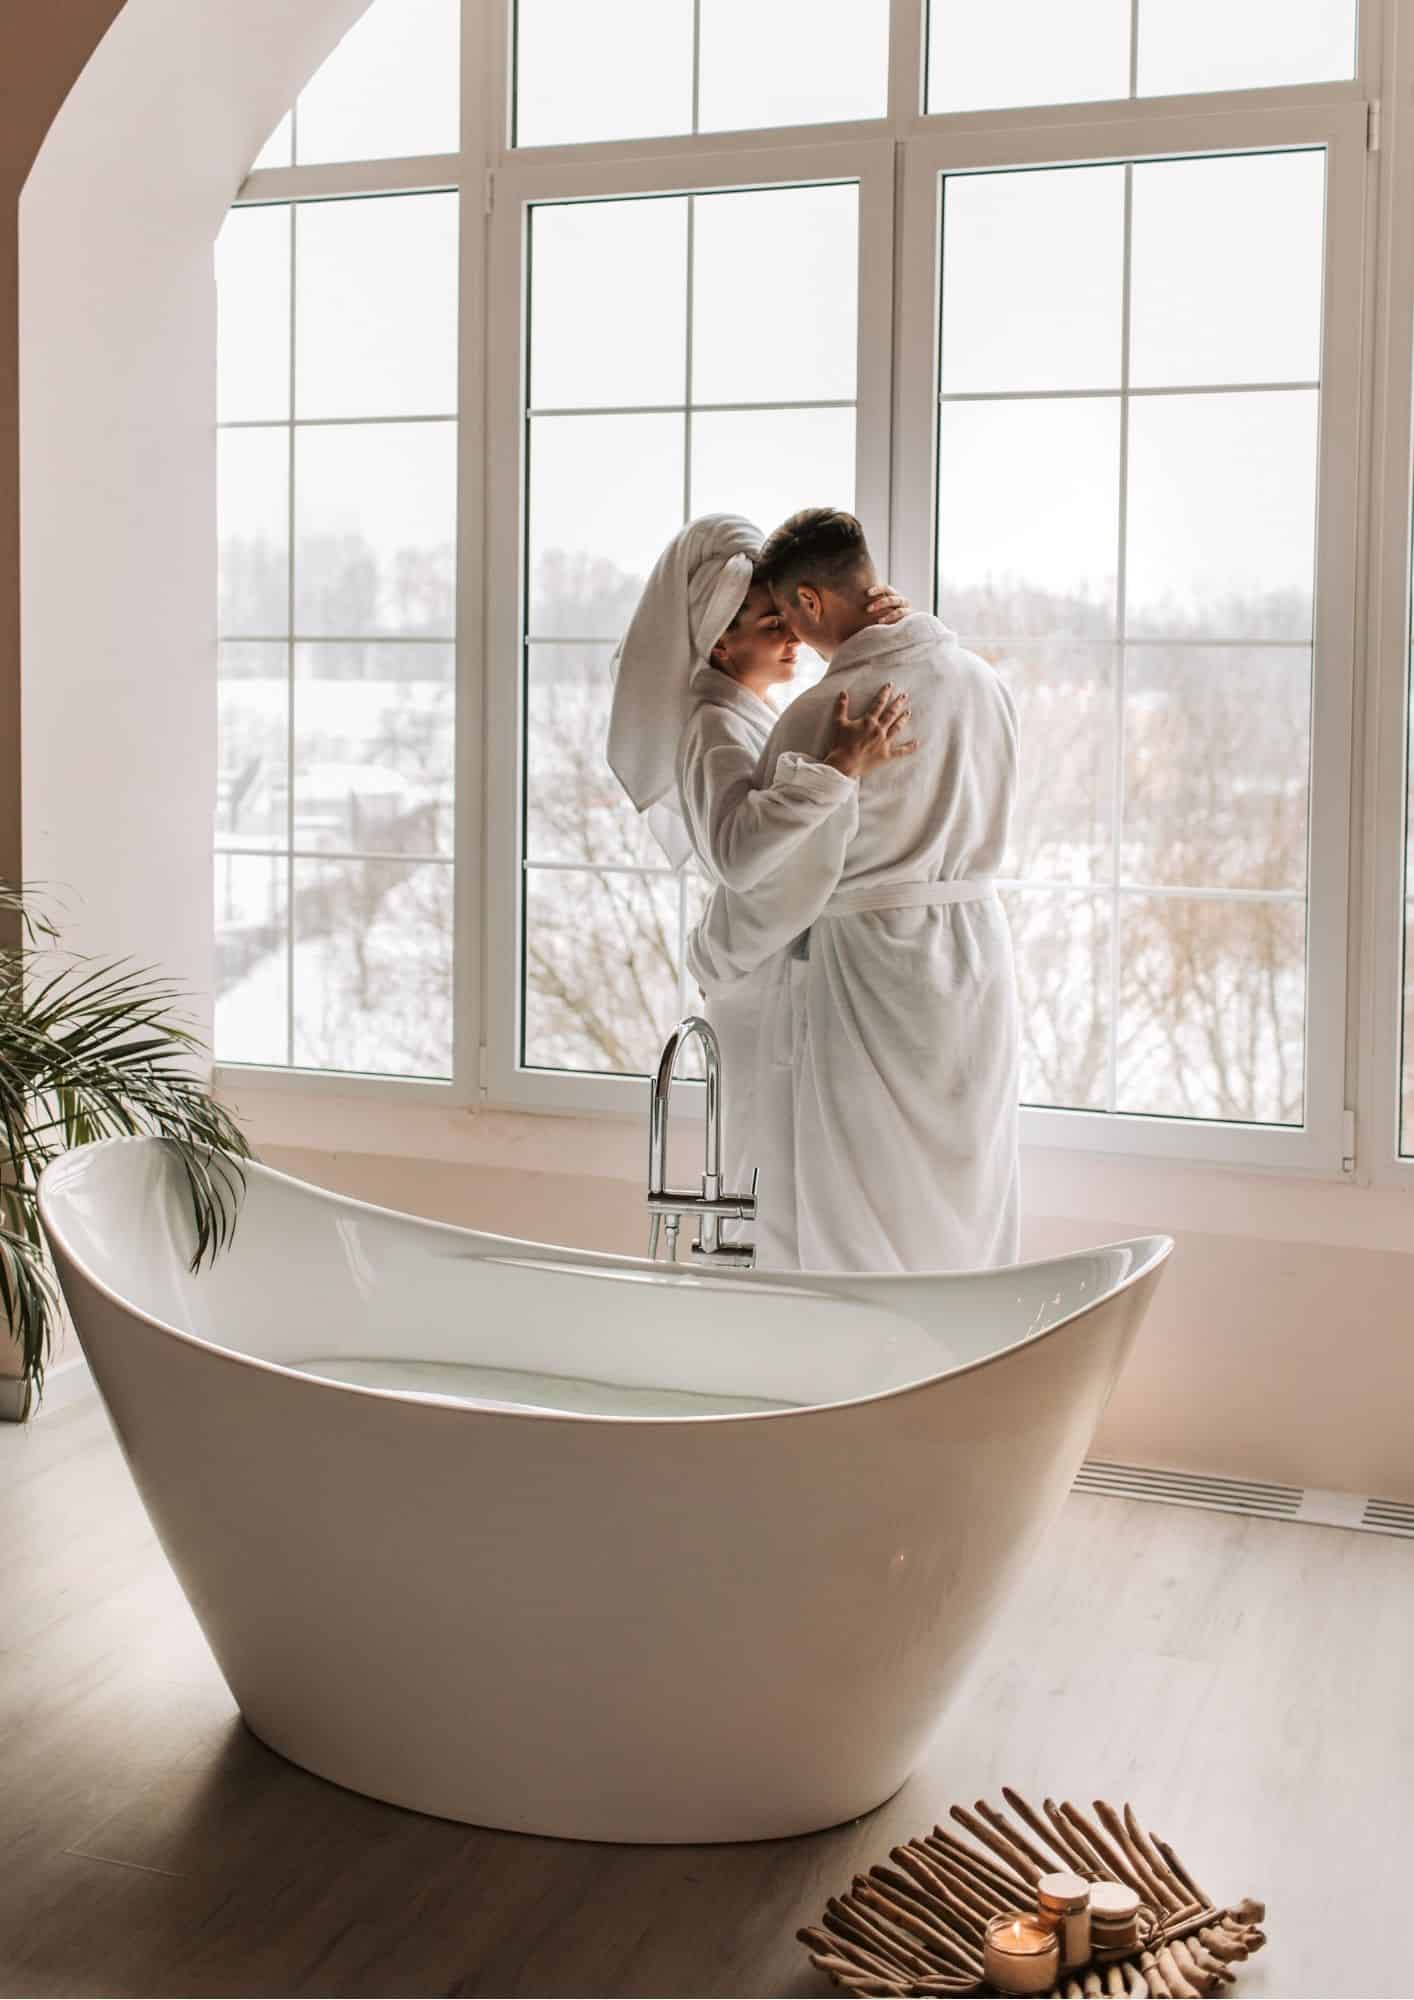 5 Valentine's Day Ideas To Charm and Enchant Your Lover